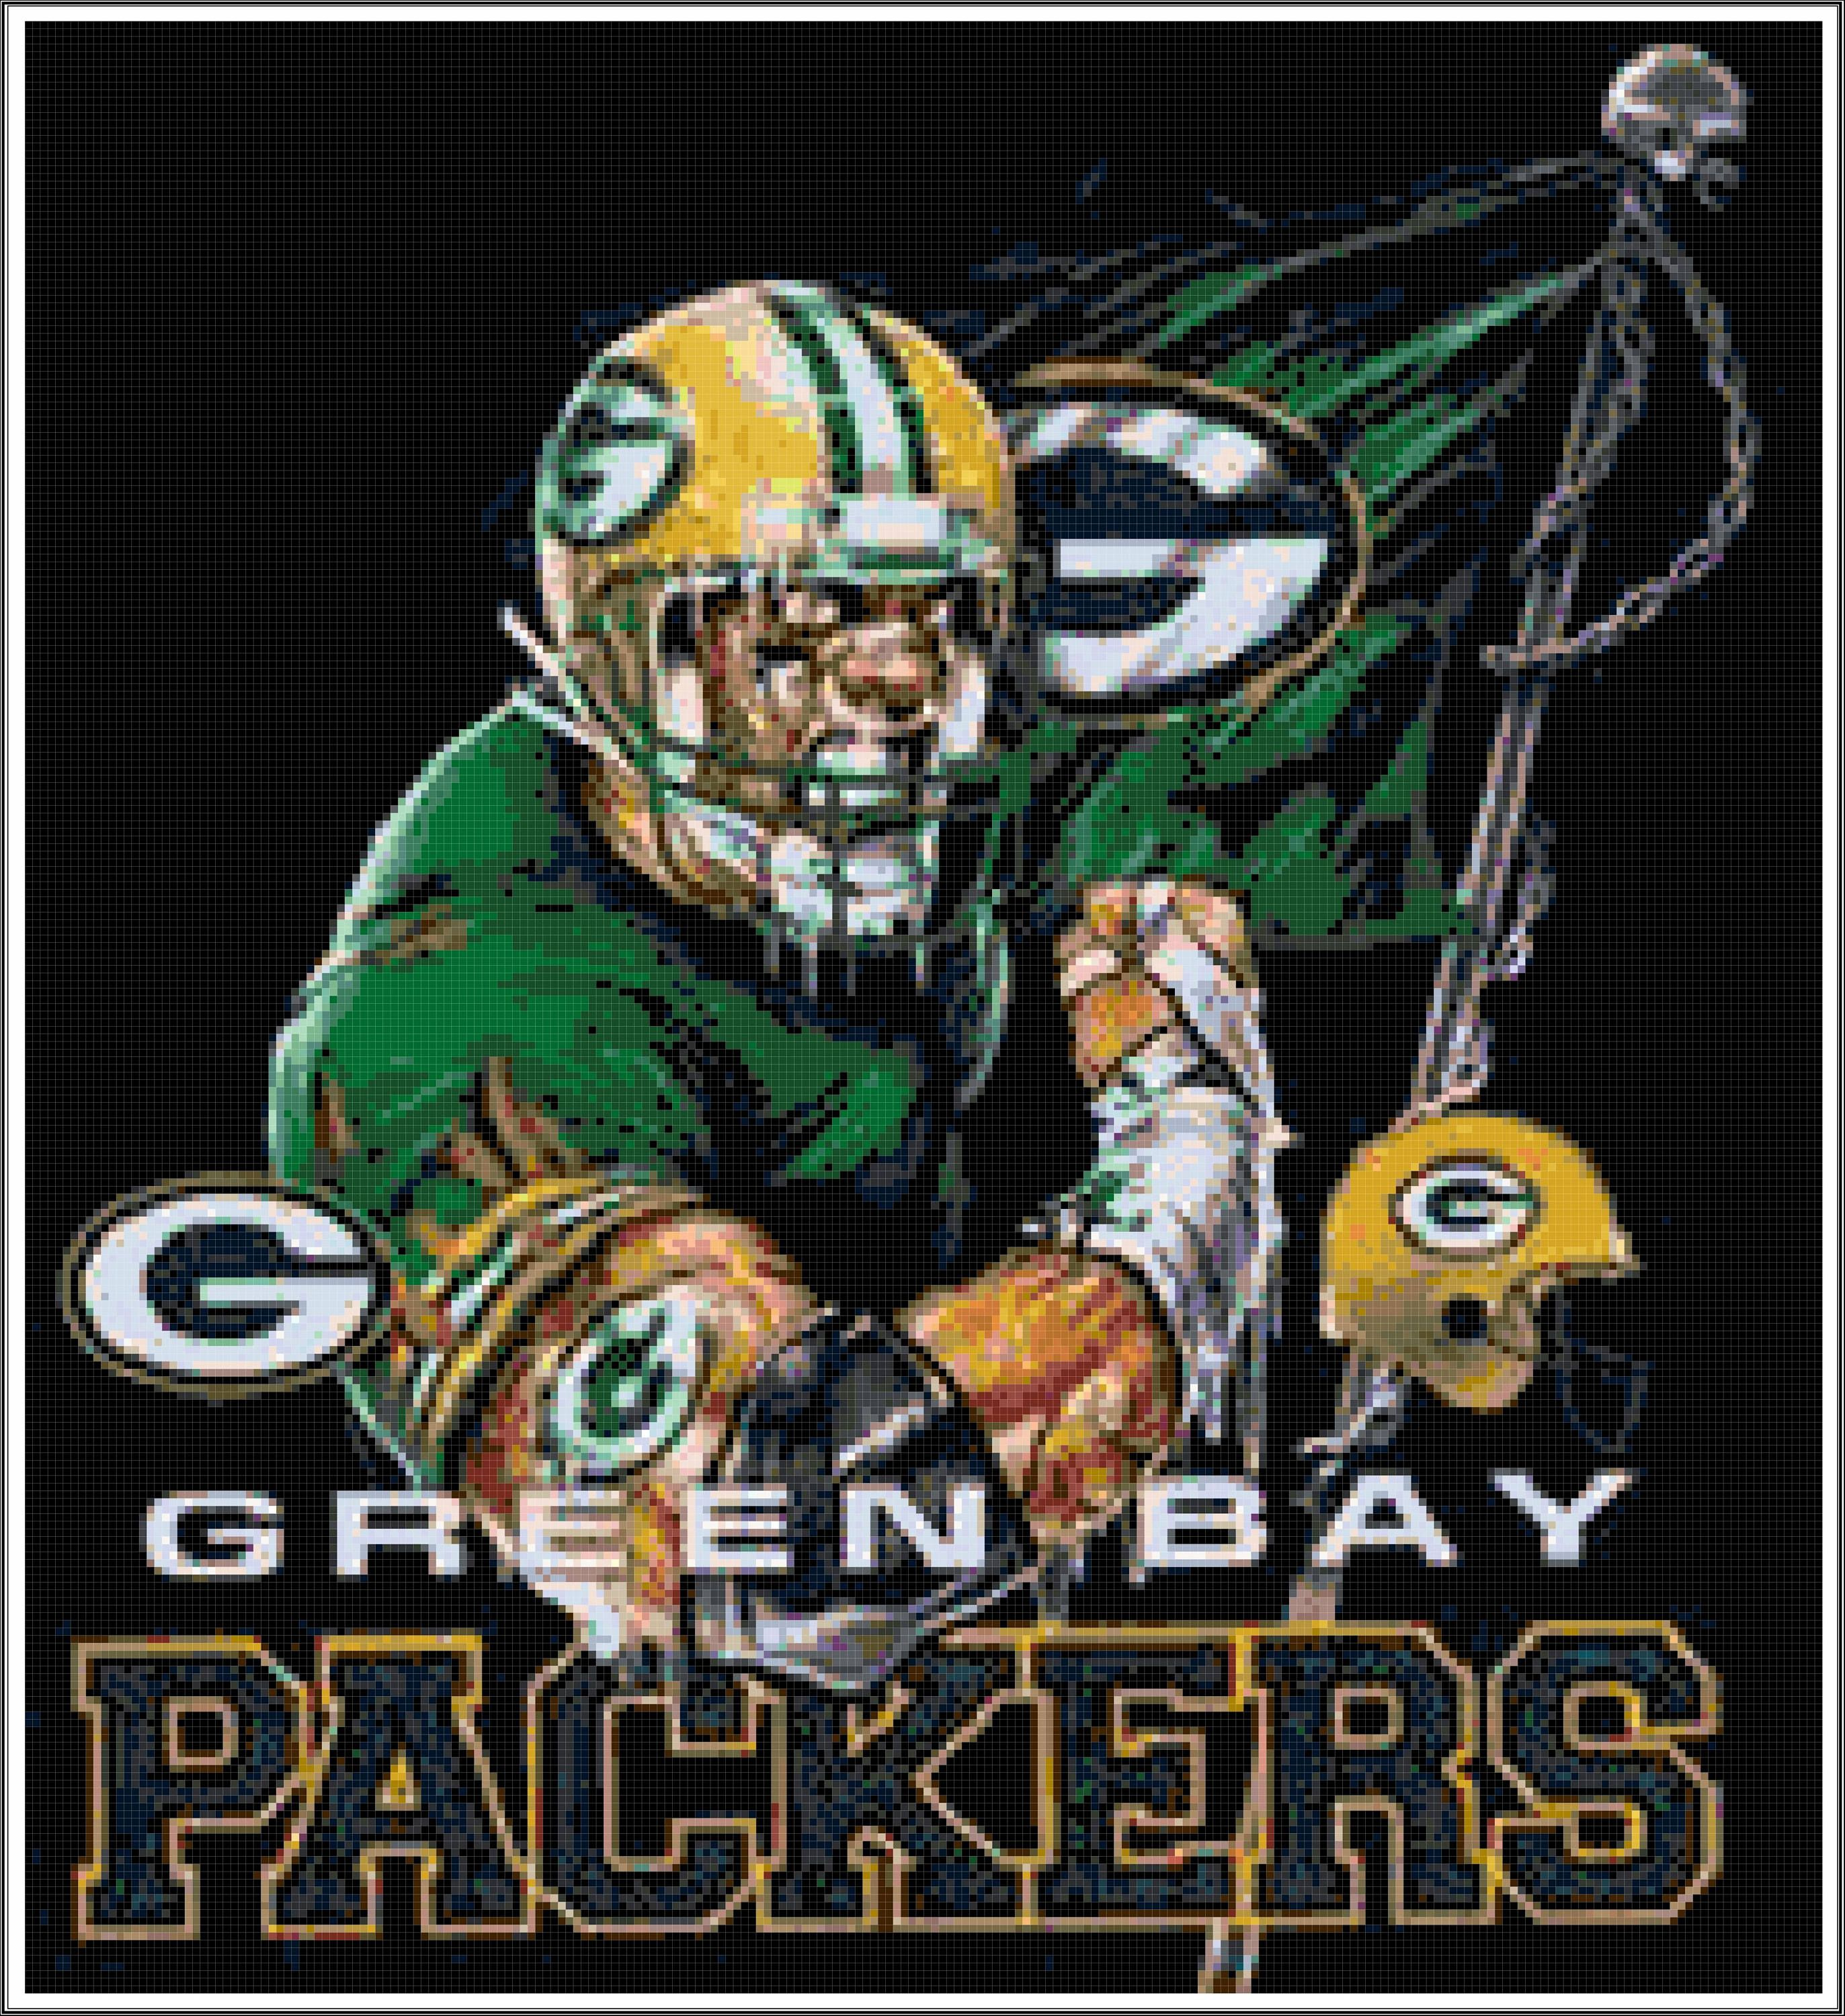 Go Green Bay Packers Football Cross Stitch Printable Needlework Pattern Diy Crossstitc Green Bay Packers Wallpaper Green Bay Packers Mascot Green Bay Packers